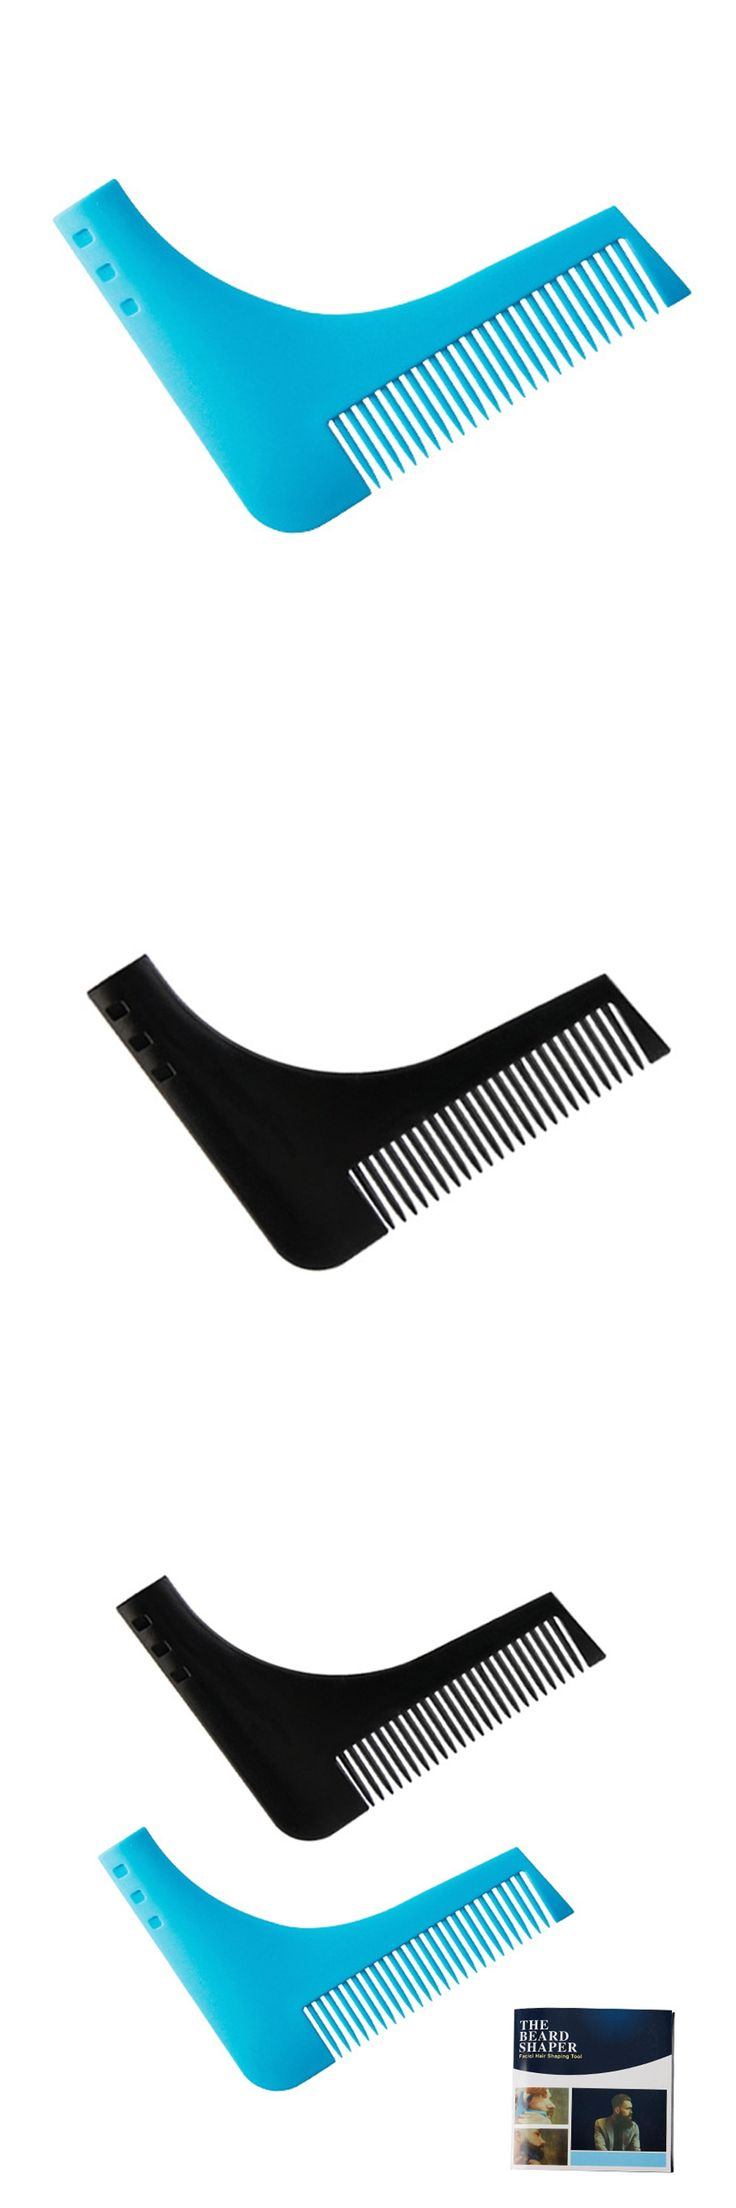 Durable Plastic Men Beard Trimmer Comb 2 Colors Gentleman Beard Shaving Molding Combs Template Trimming Tools Easy To Use